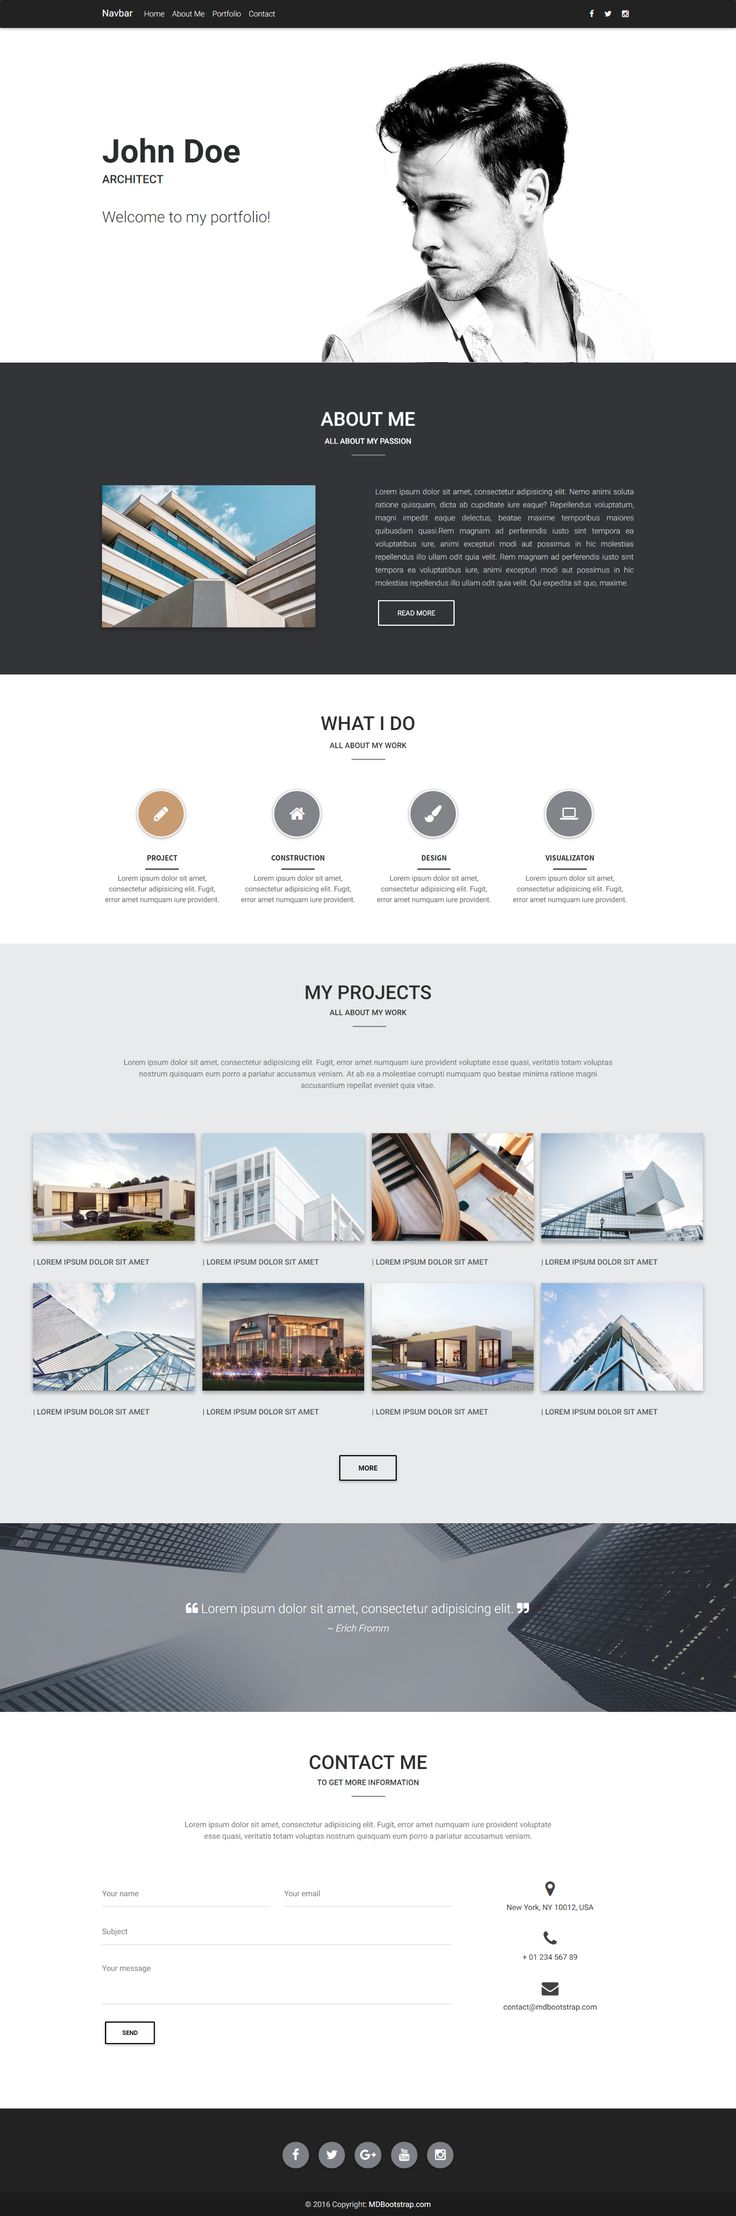 Fully responsive portfolio template, created for architects and related professions